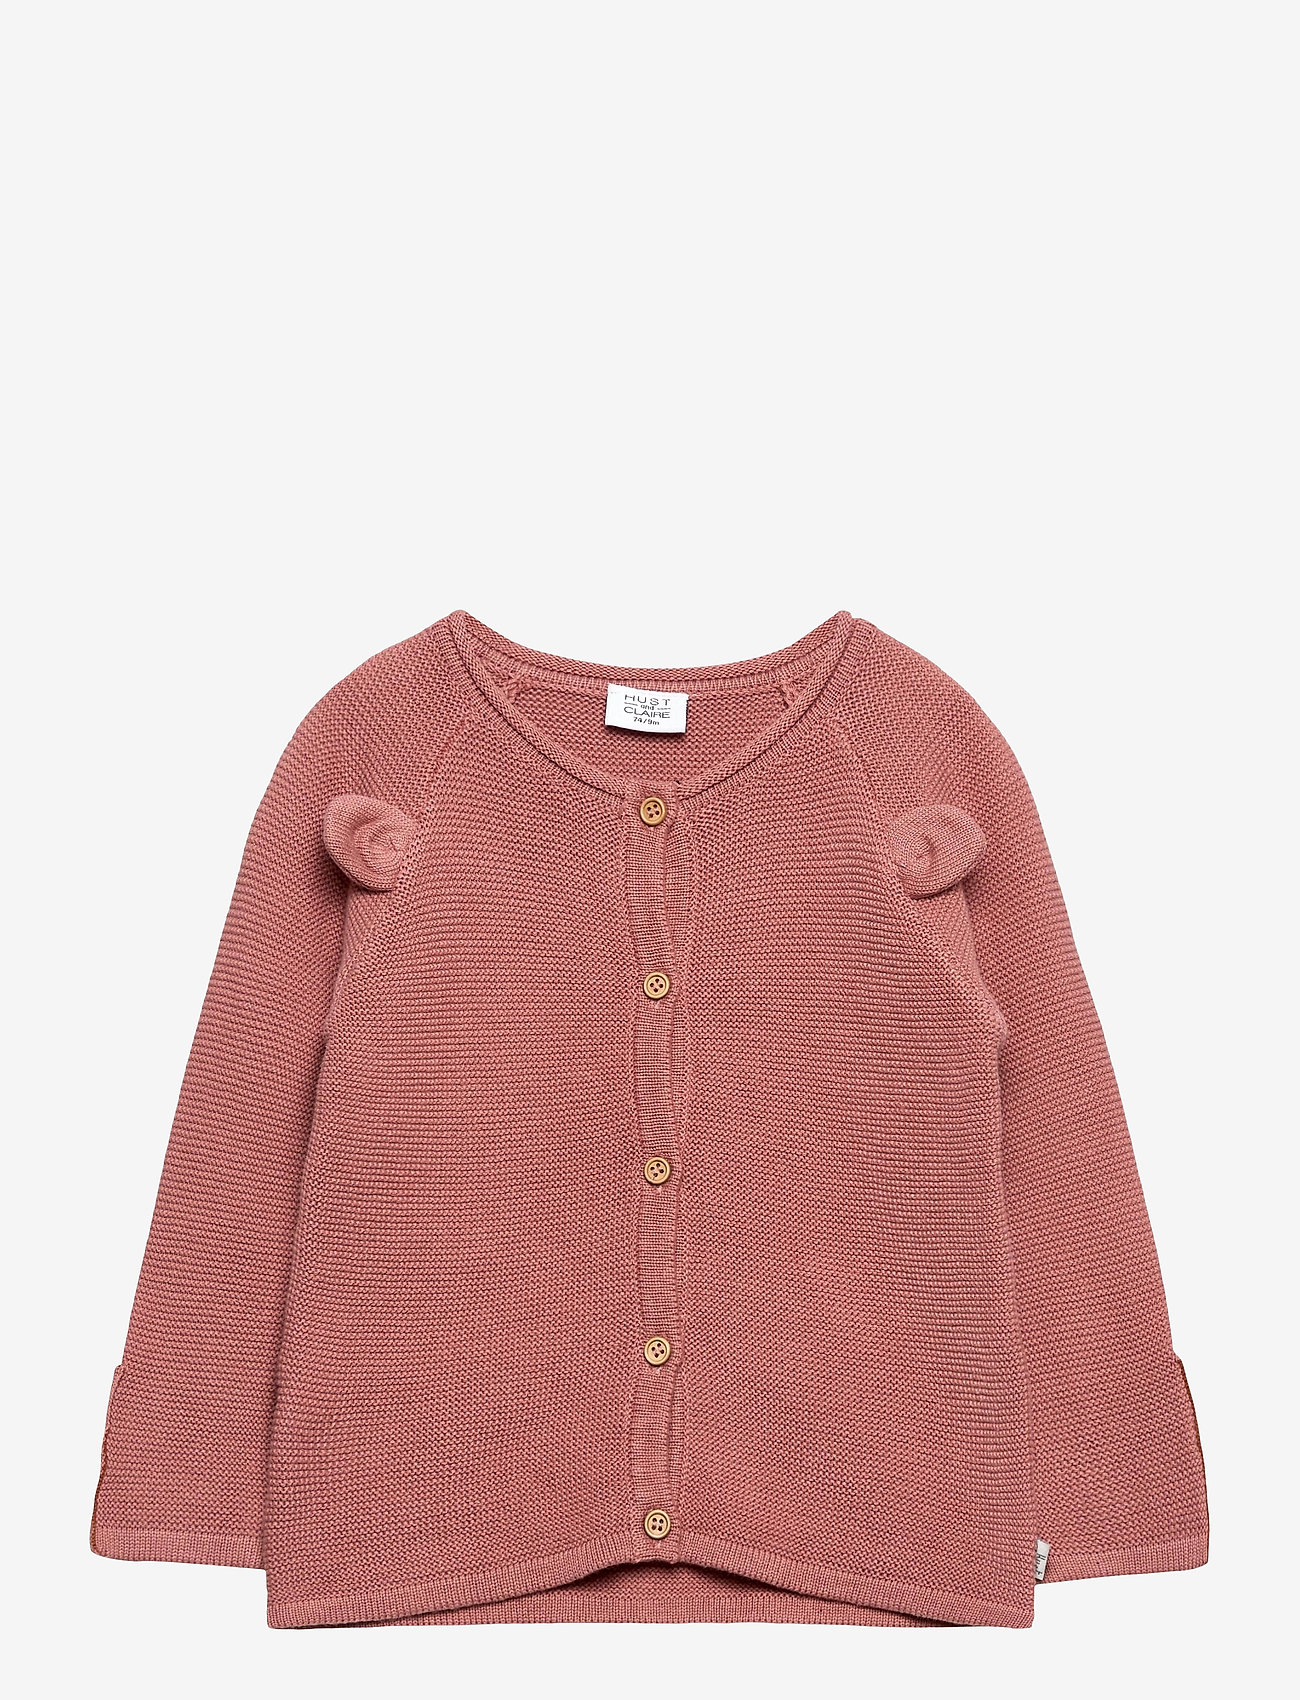 Hust & Claire - Cilla - Cardigan - gilets - old rosie - 0